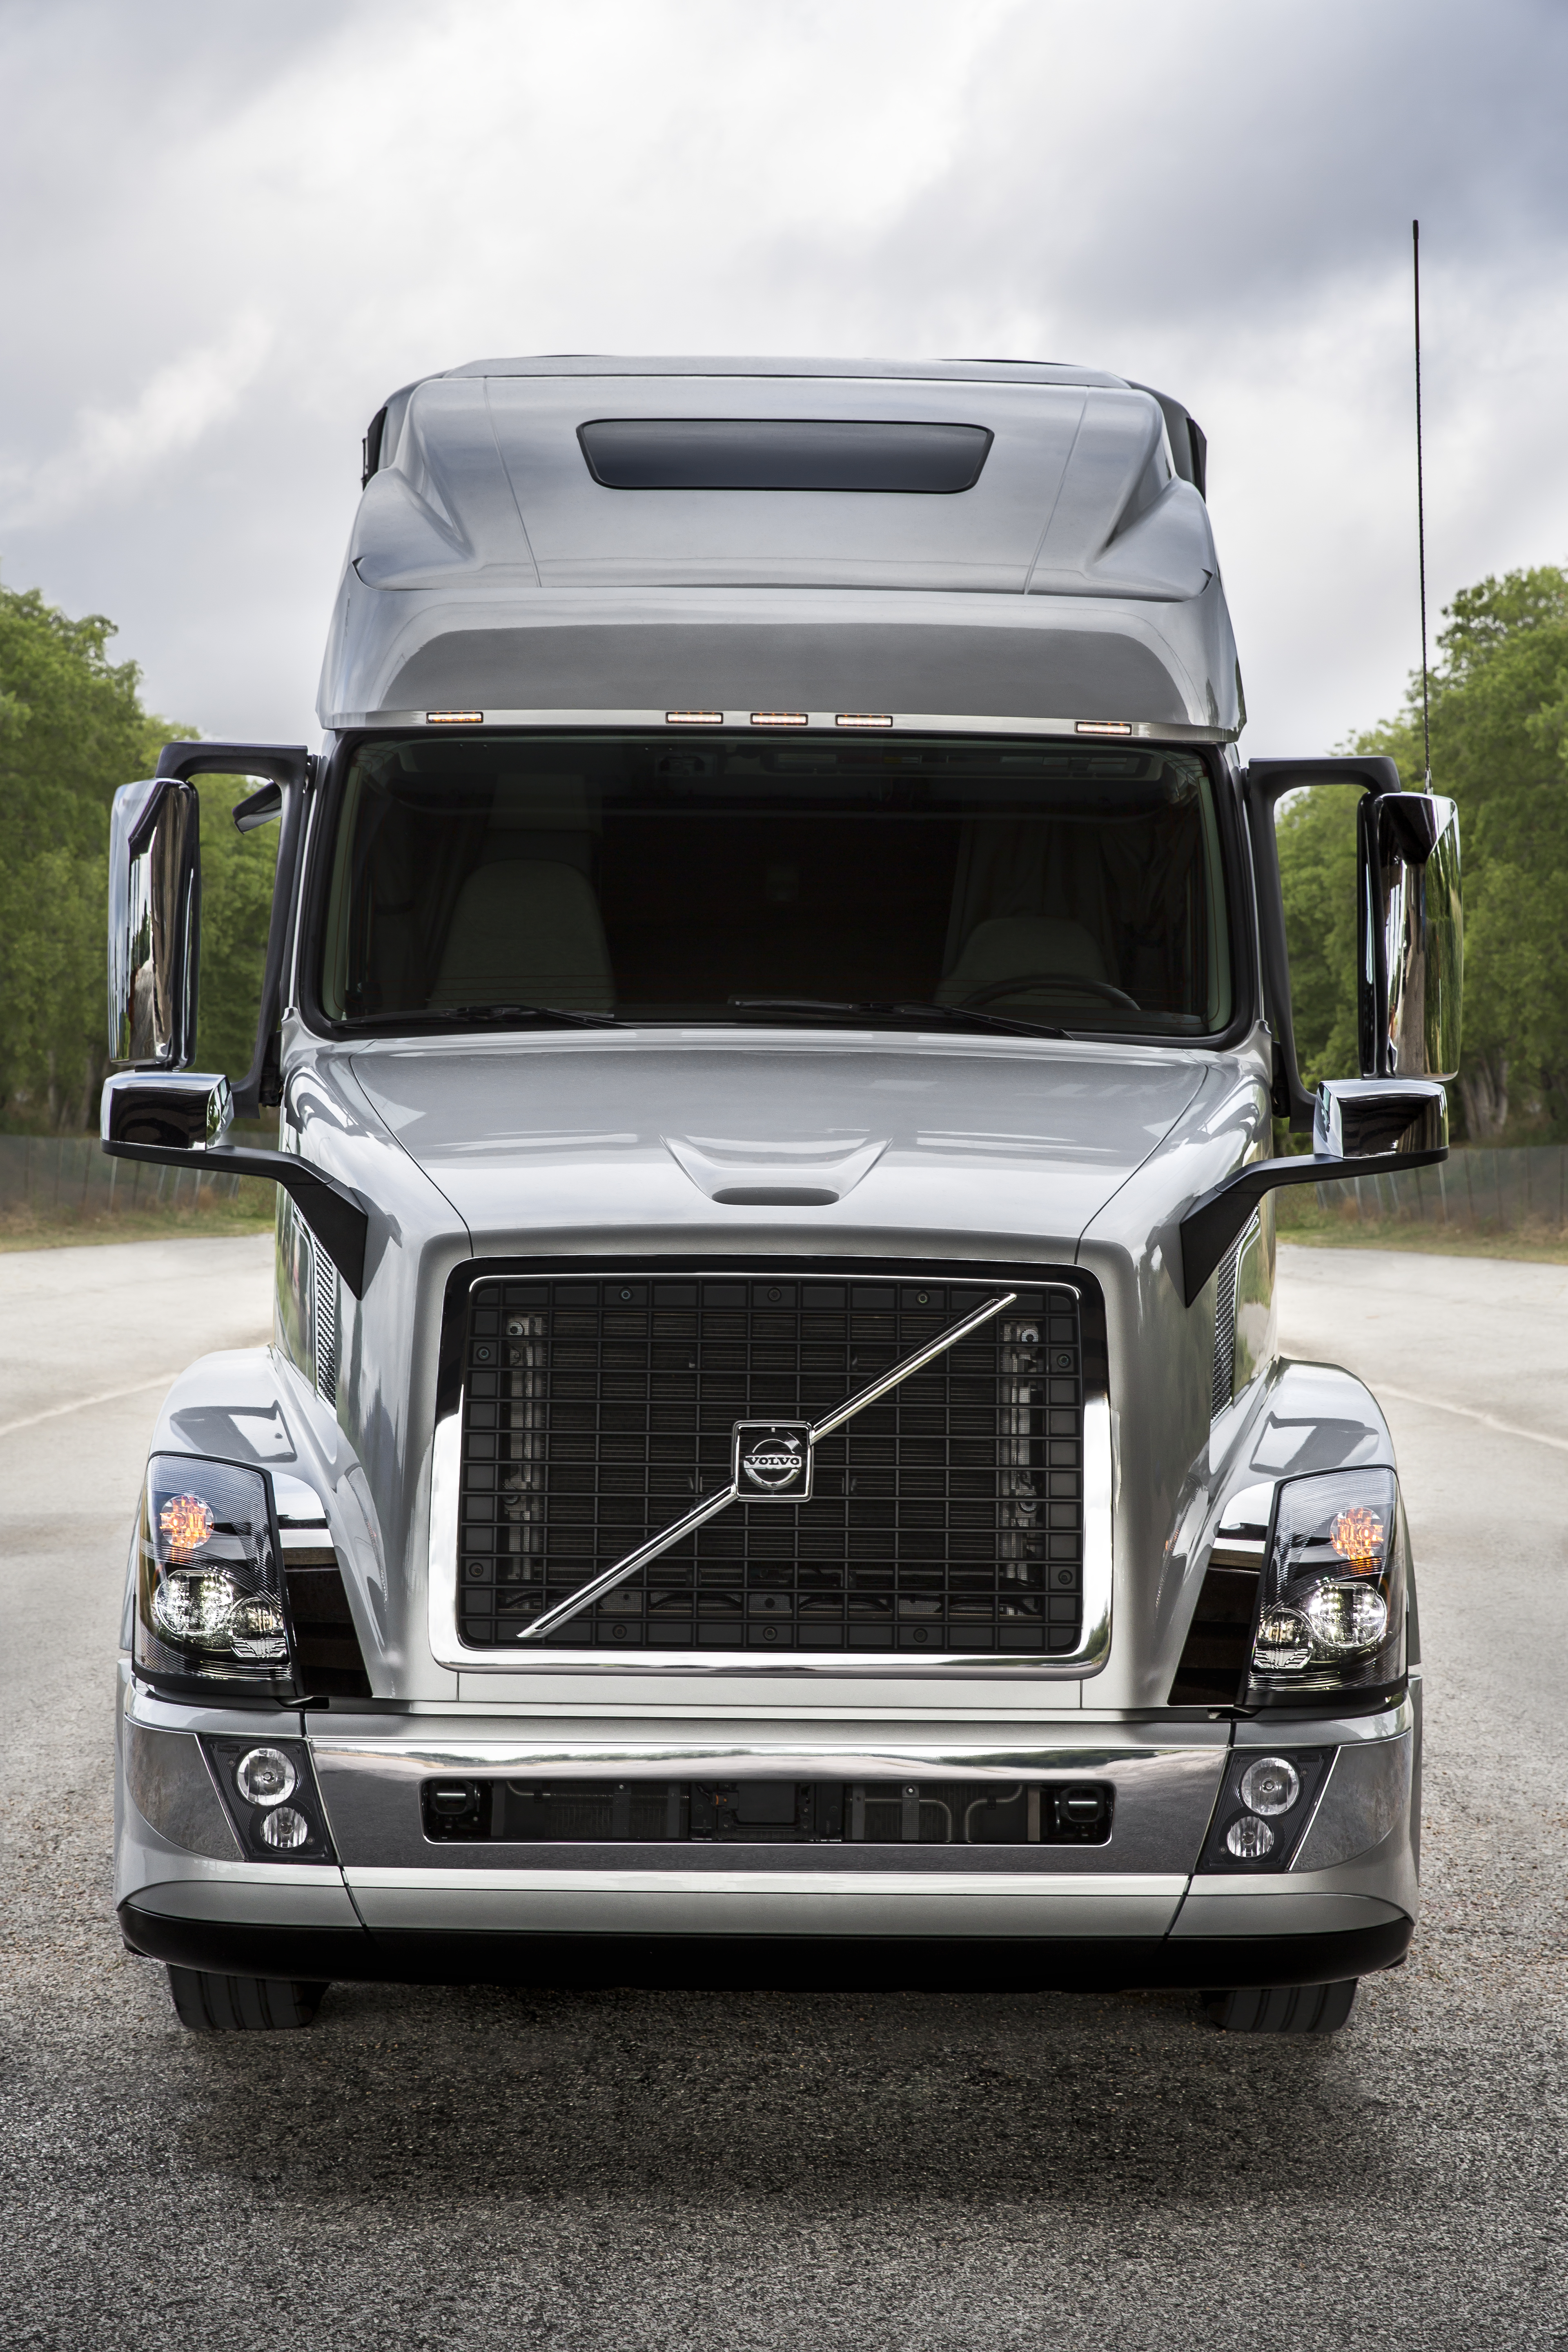 Driving the 2016 model year Volvo VN